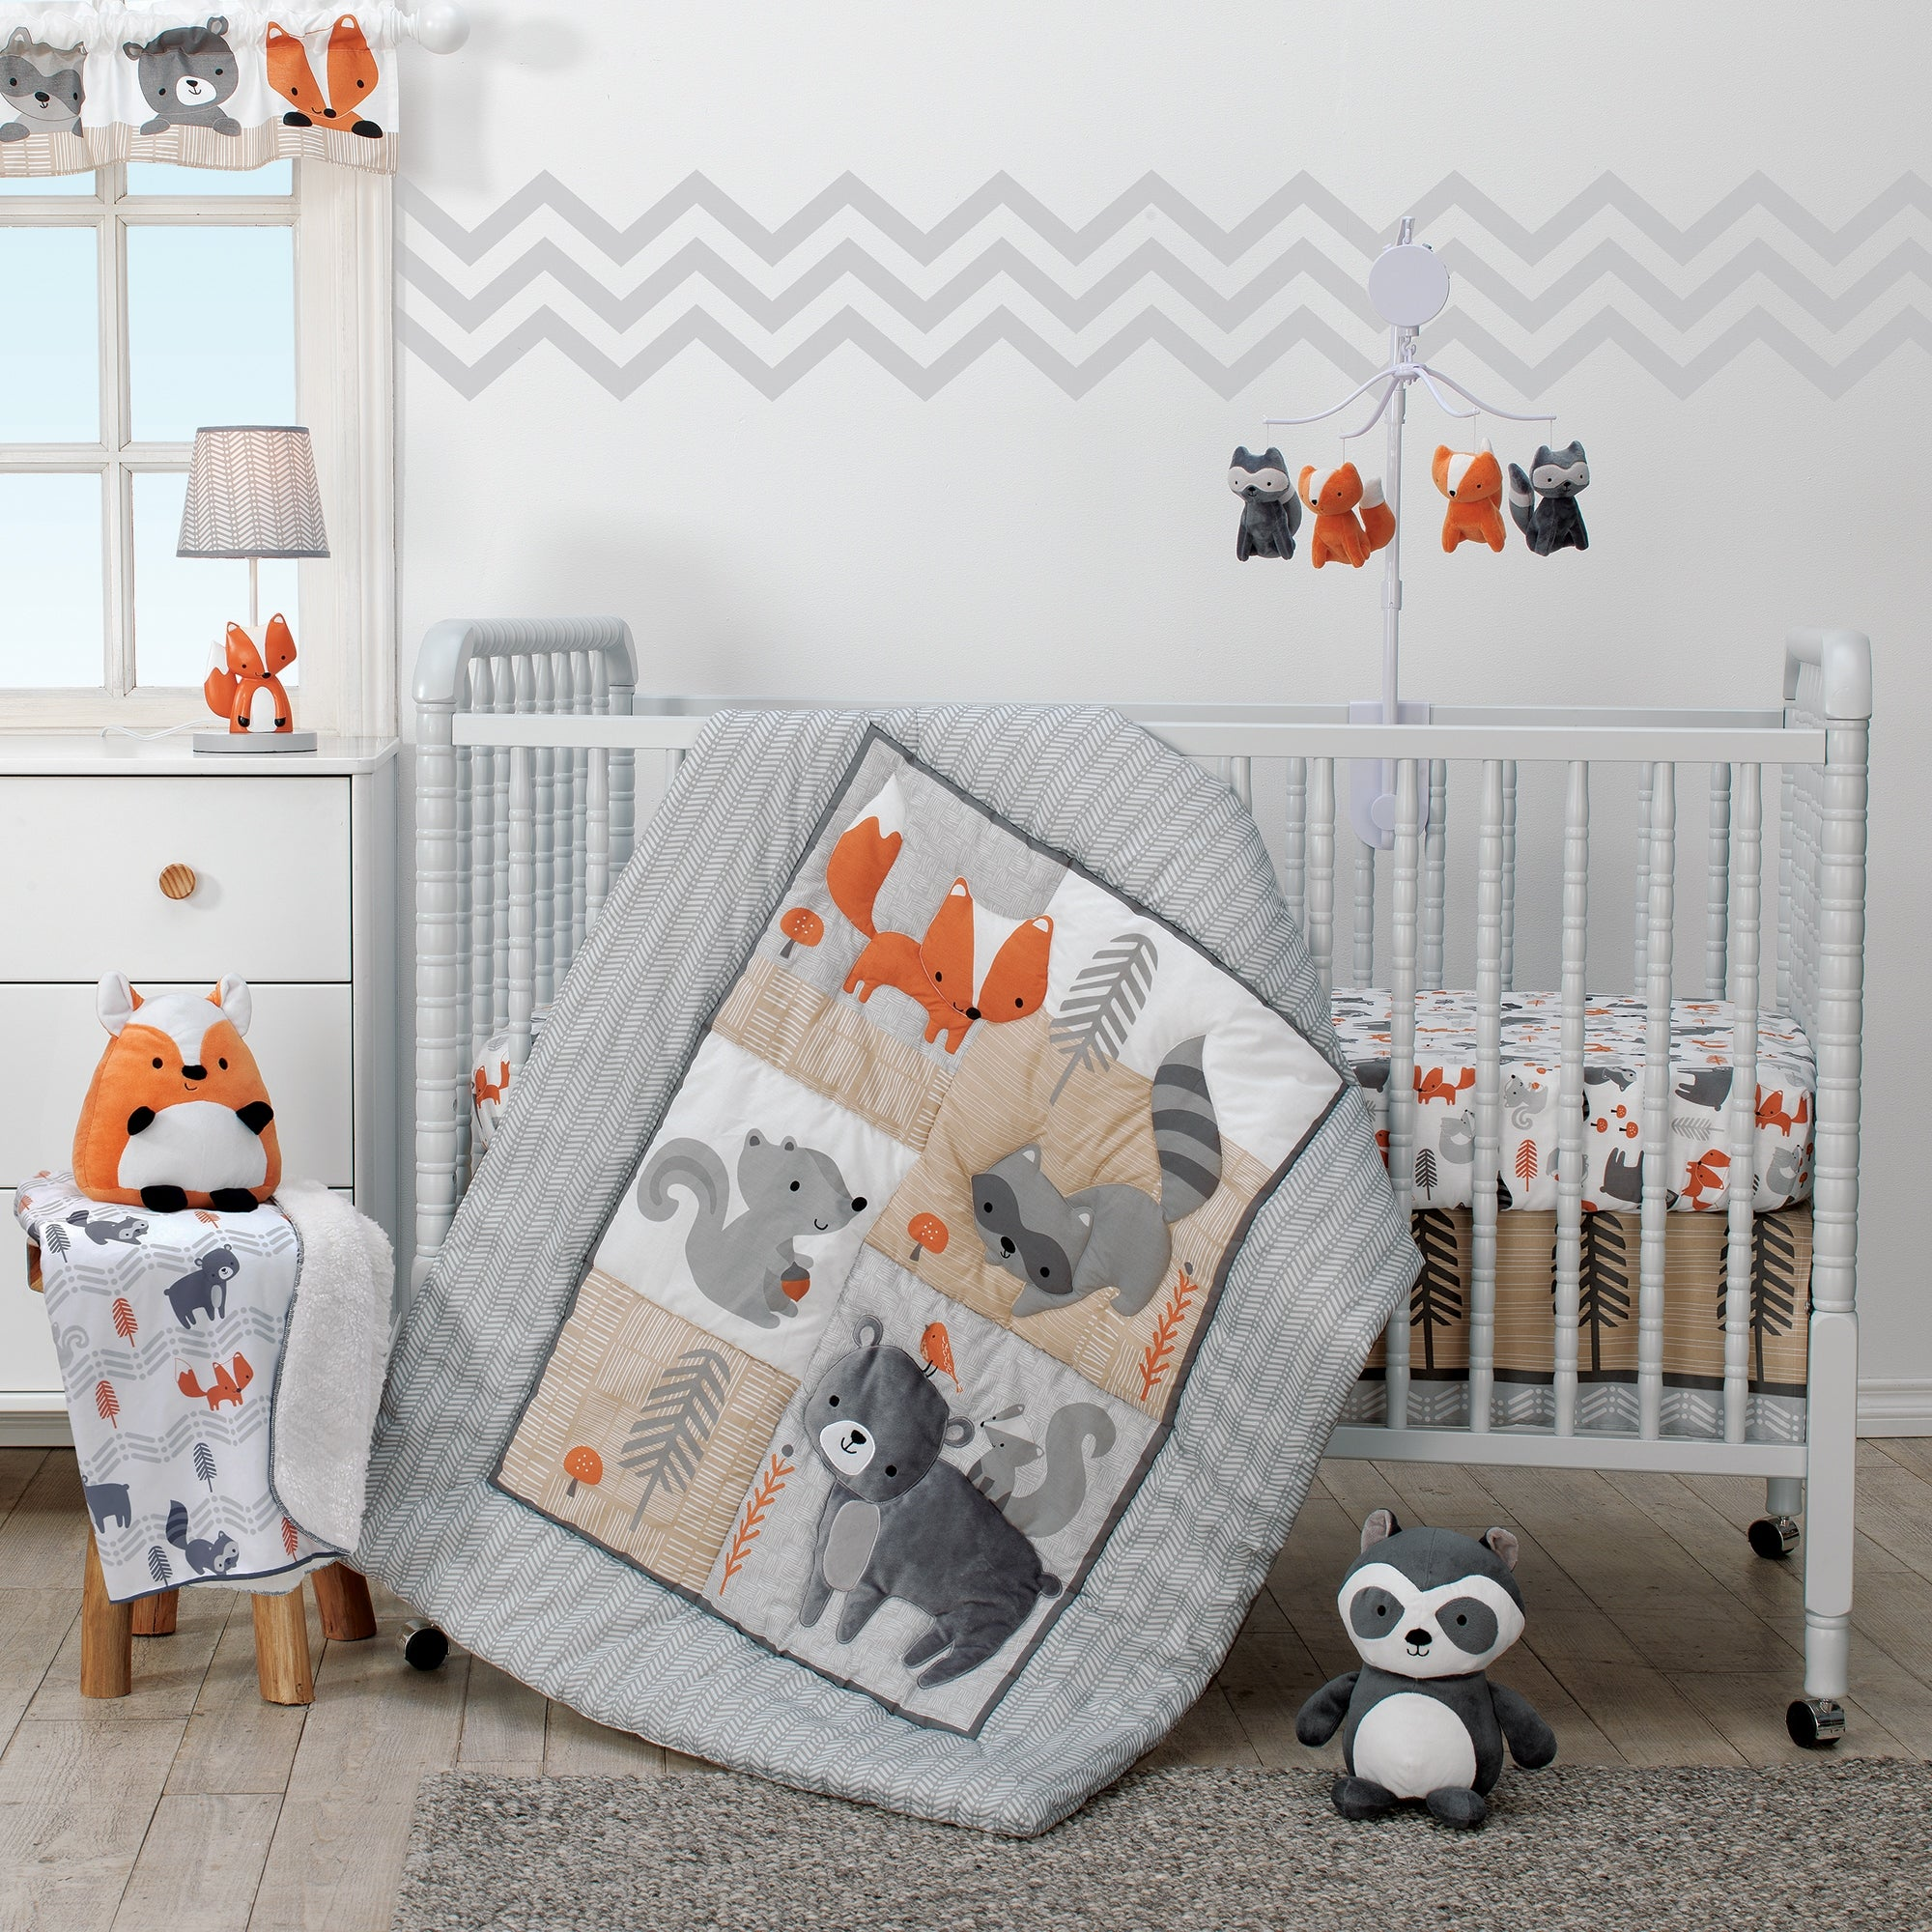 Bedtime Originals Acorn Gray Beige White Orange Woodland Fox Rac Squirrel Bear 3 Piece Baby Nursery Crib Bedding Set